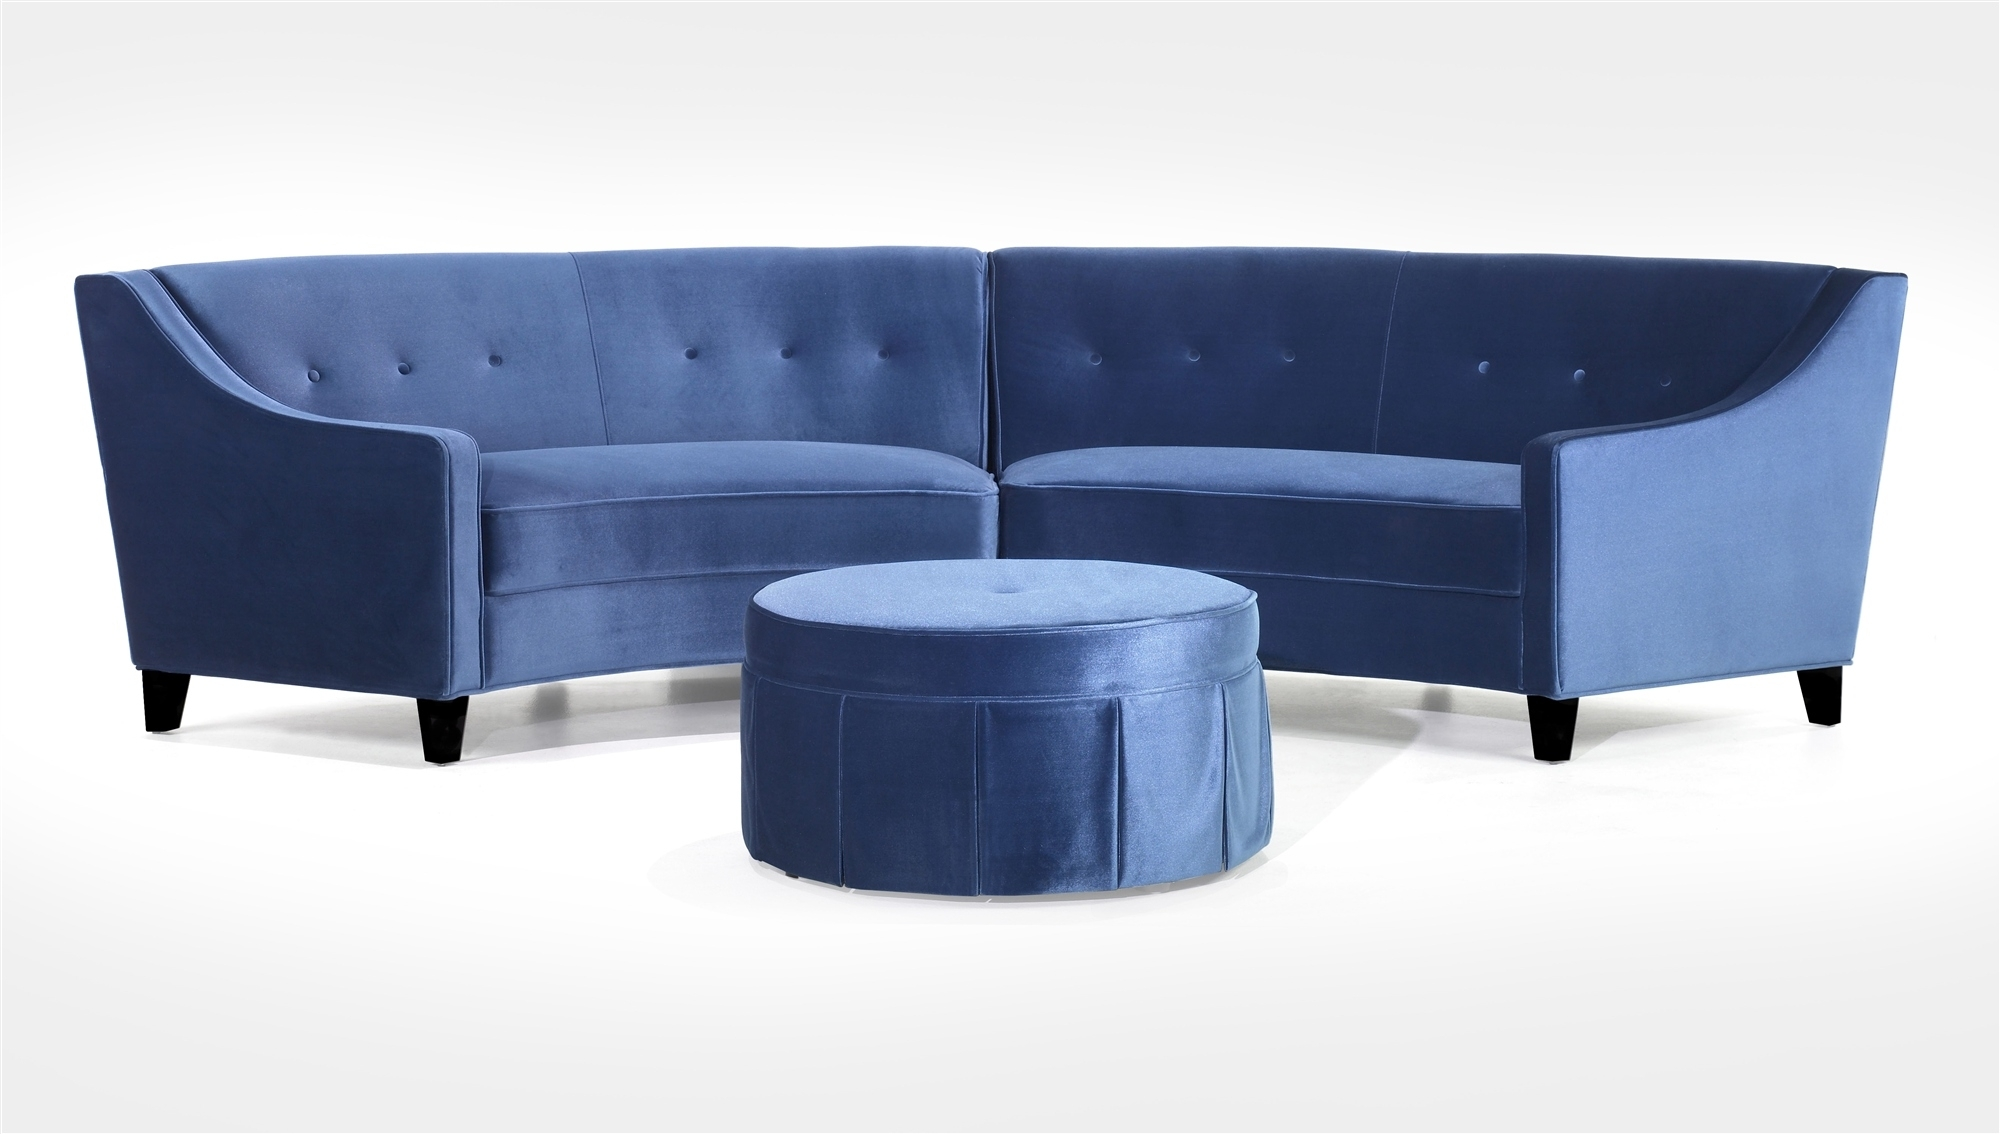 Popular Small Round Sectional Sofa 49 In Sleek Sectional Sofas With With Regard To Sleek Sectional Sofas (View 8 of 10)